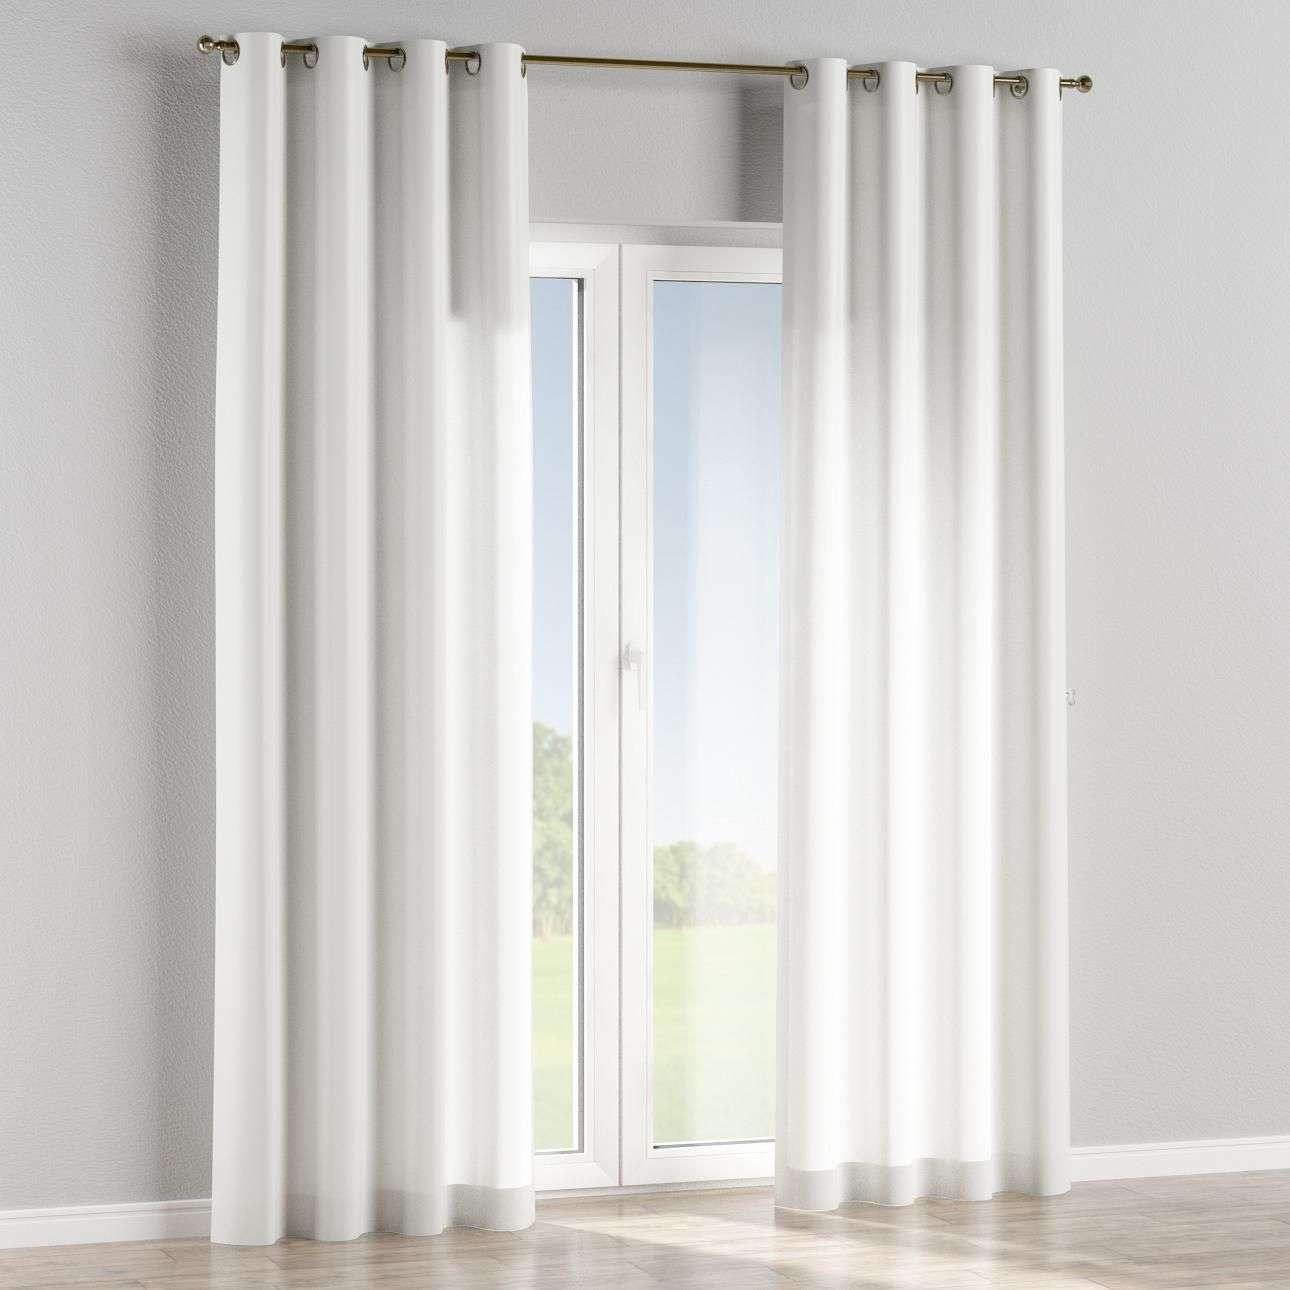 Eyelet curtains in collection Ashley, fabric: 137-66